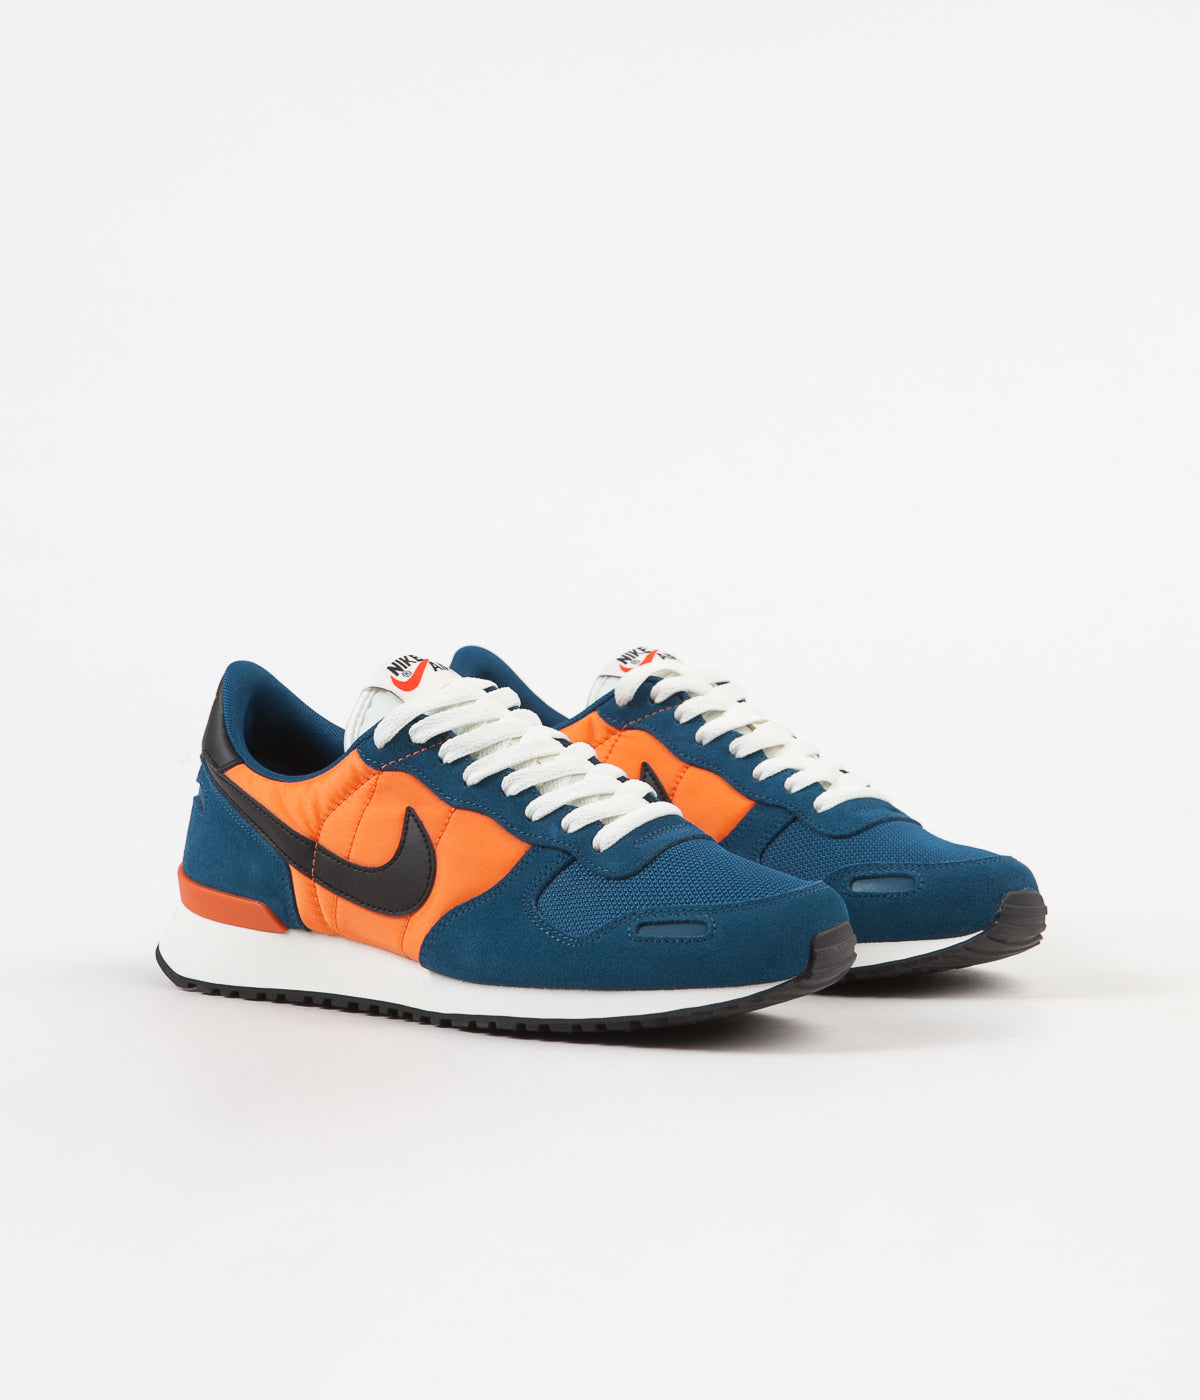 Nike Air Vortex (Blue Force Black Clay Orange Sail